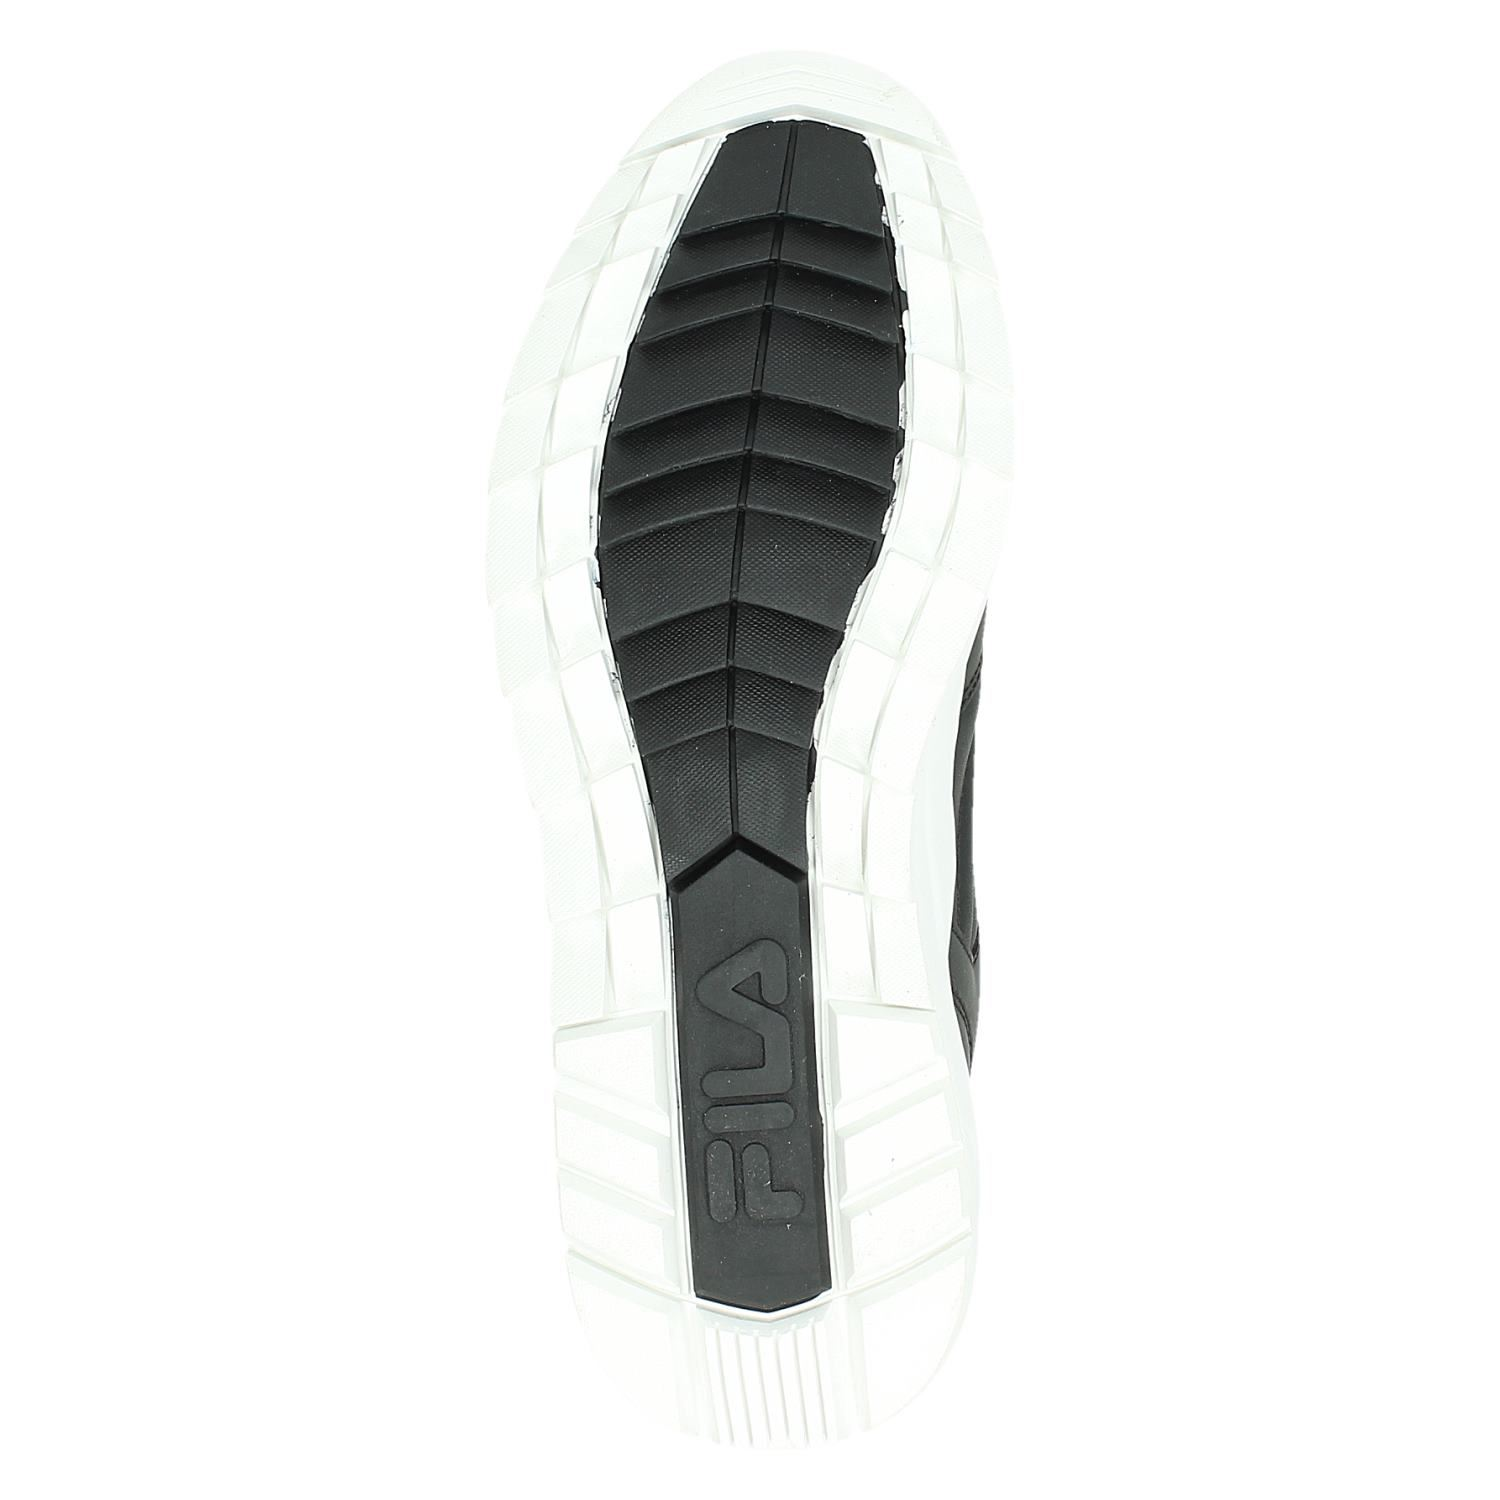 eae3f24054b Fila Orbit CMR jogger Low heren lage sneakers. Previous